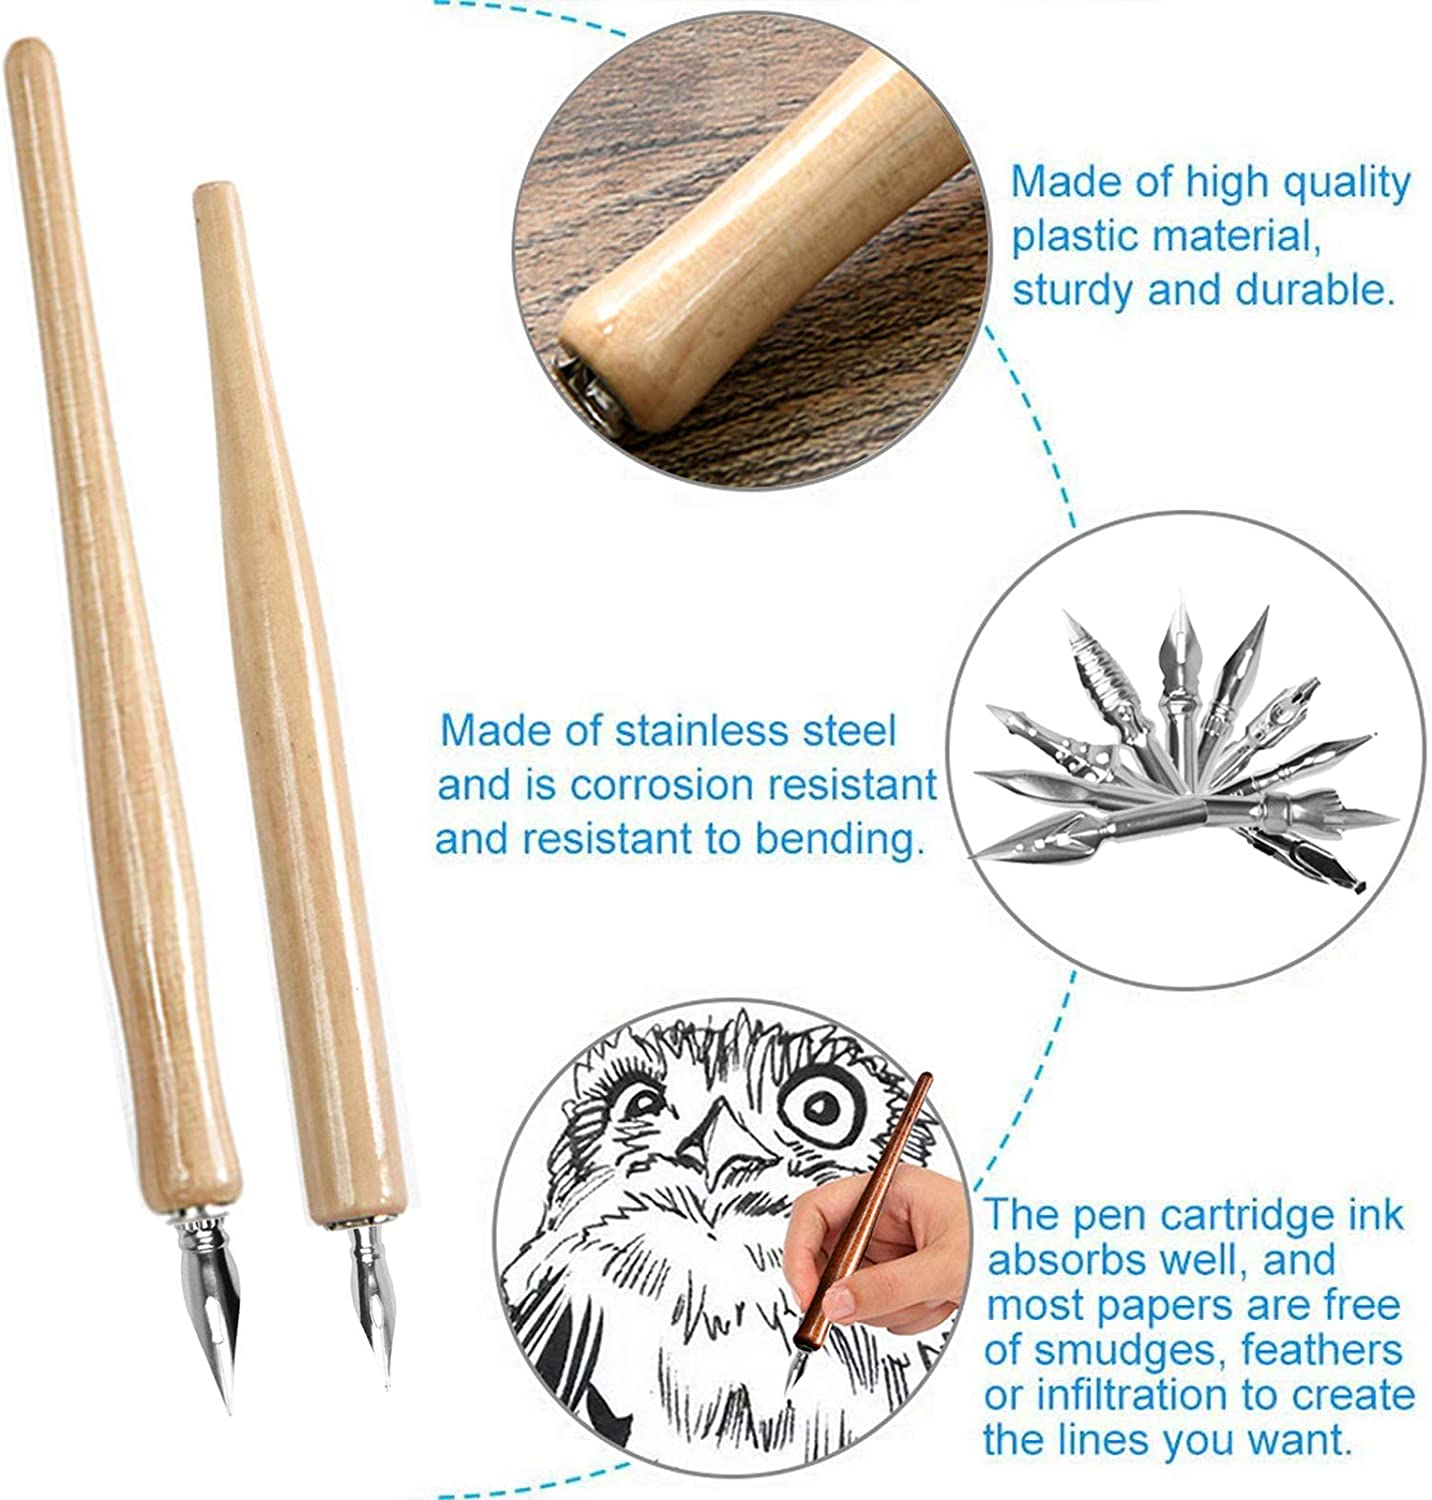 Calligraphy Pens Calligraphy Gift With 2 Wood Logs Pen Holders 9 Nibs Ideal for Painting Animation Calligraphy Lettering Sketch Cartoonists Comic Dip Pen